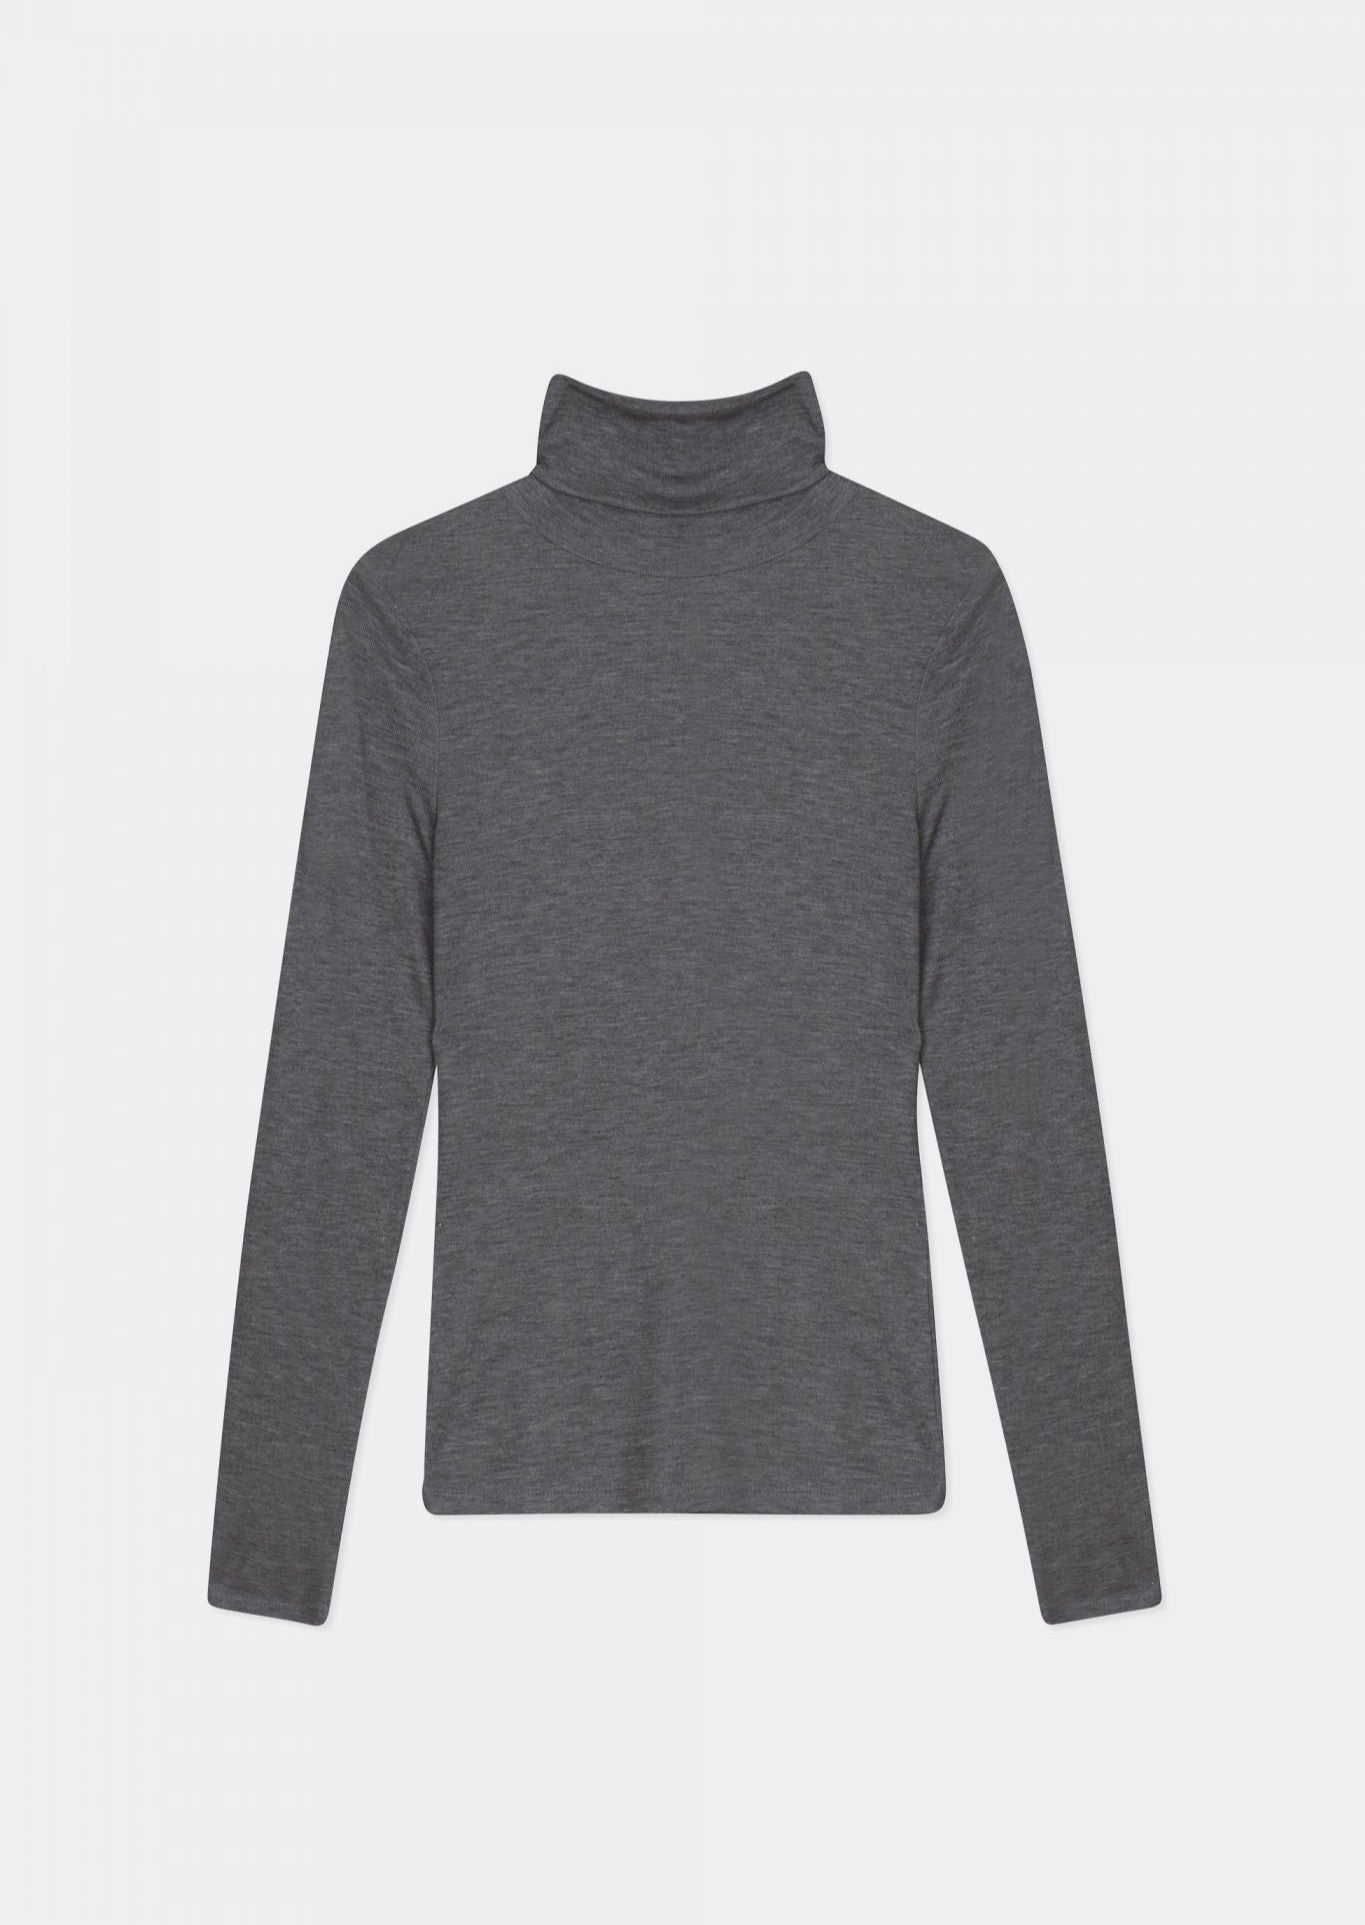 Remi Turtleneck - dark grey melange